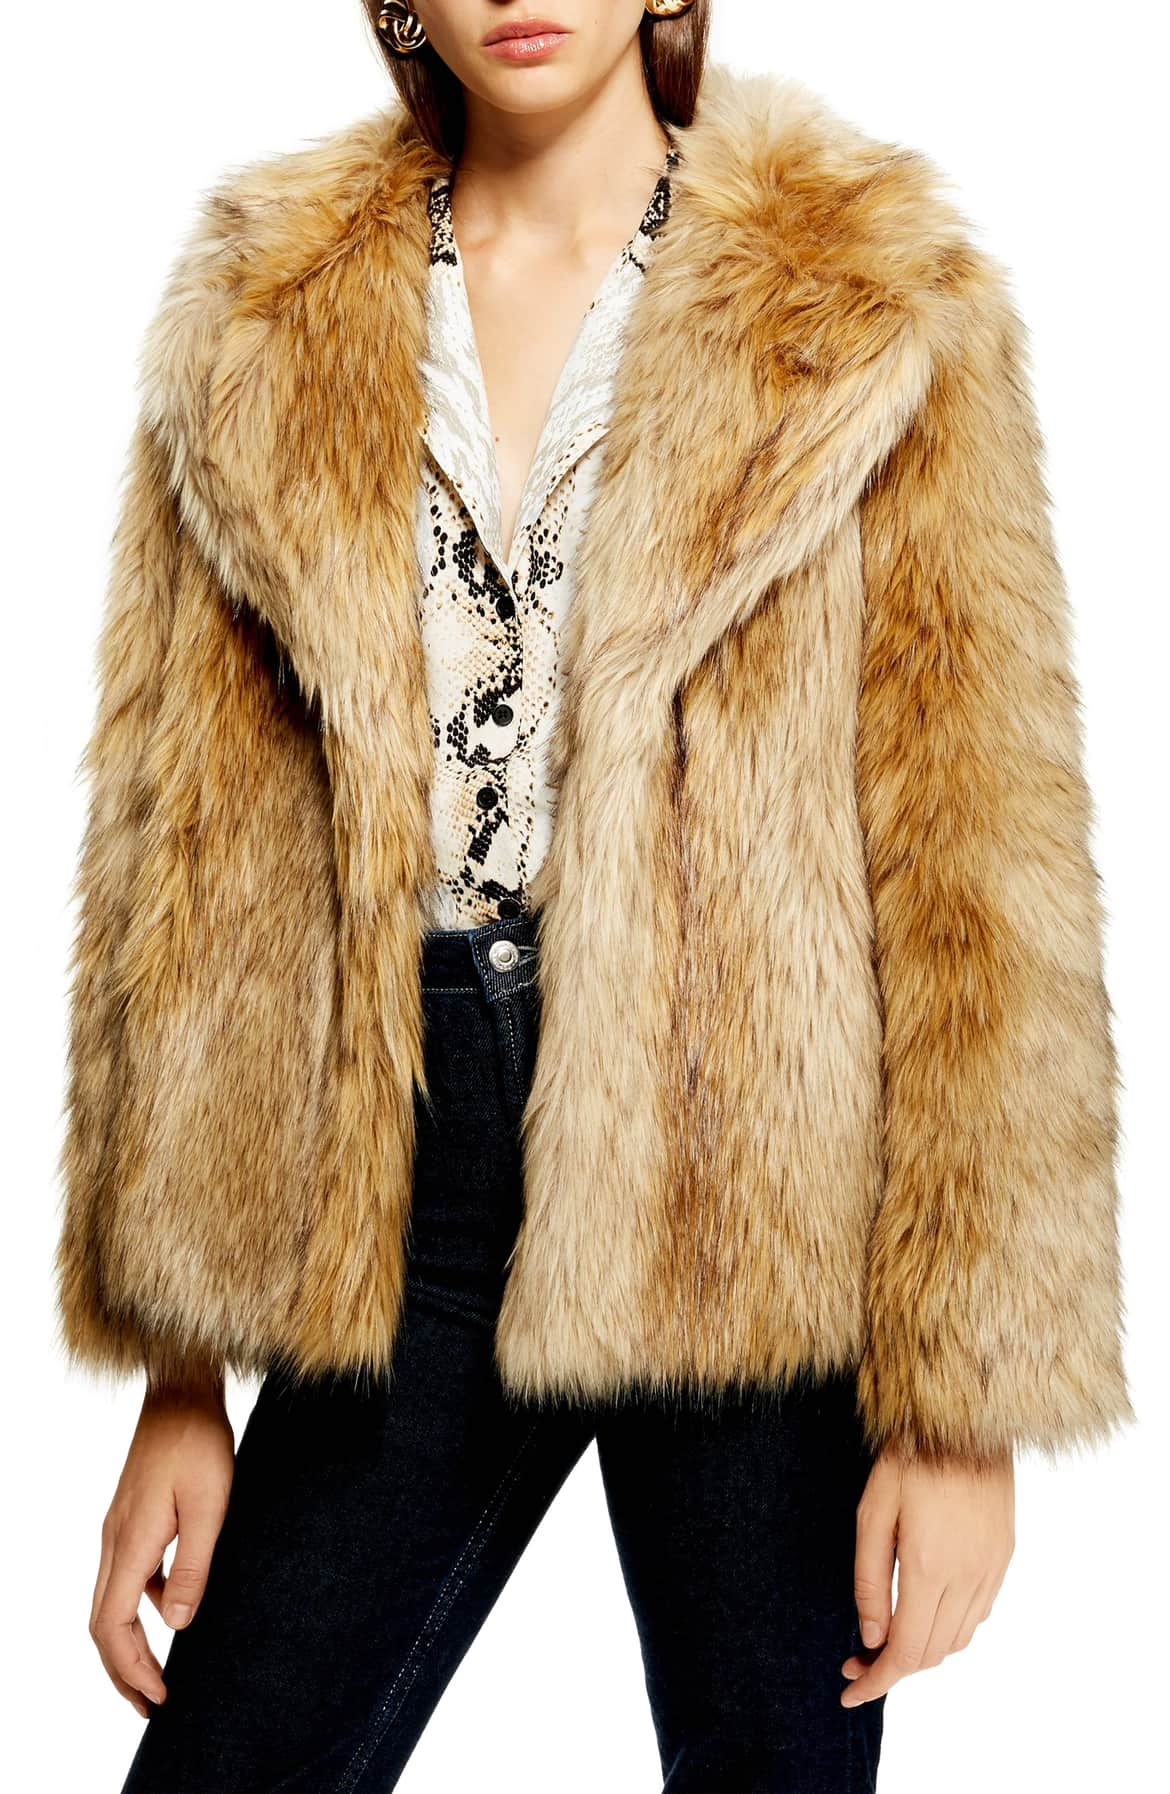 <p>Super shaggy faux fur adds statement texture to this hip-length jacket detailed with a face-framing collar. $150. (Image: Nordstrom){&nbsp;}</p><p></p>